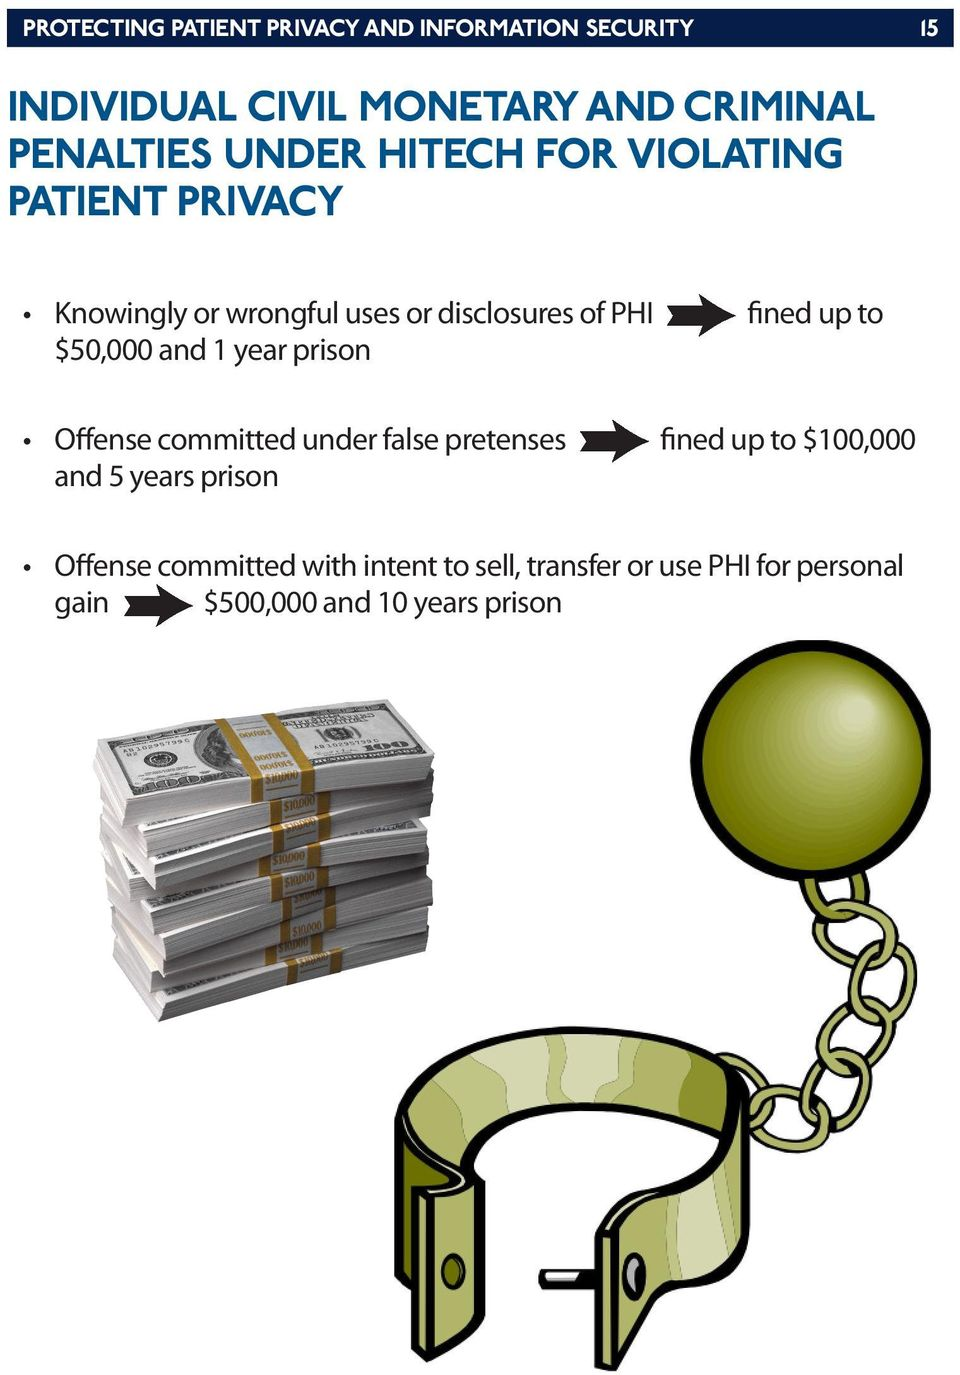 1 year prison fined up to Offense committed under false pretenses fined up to $100,000 and 5 years